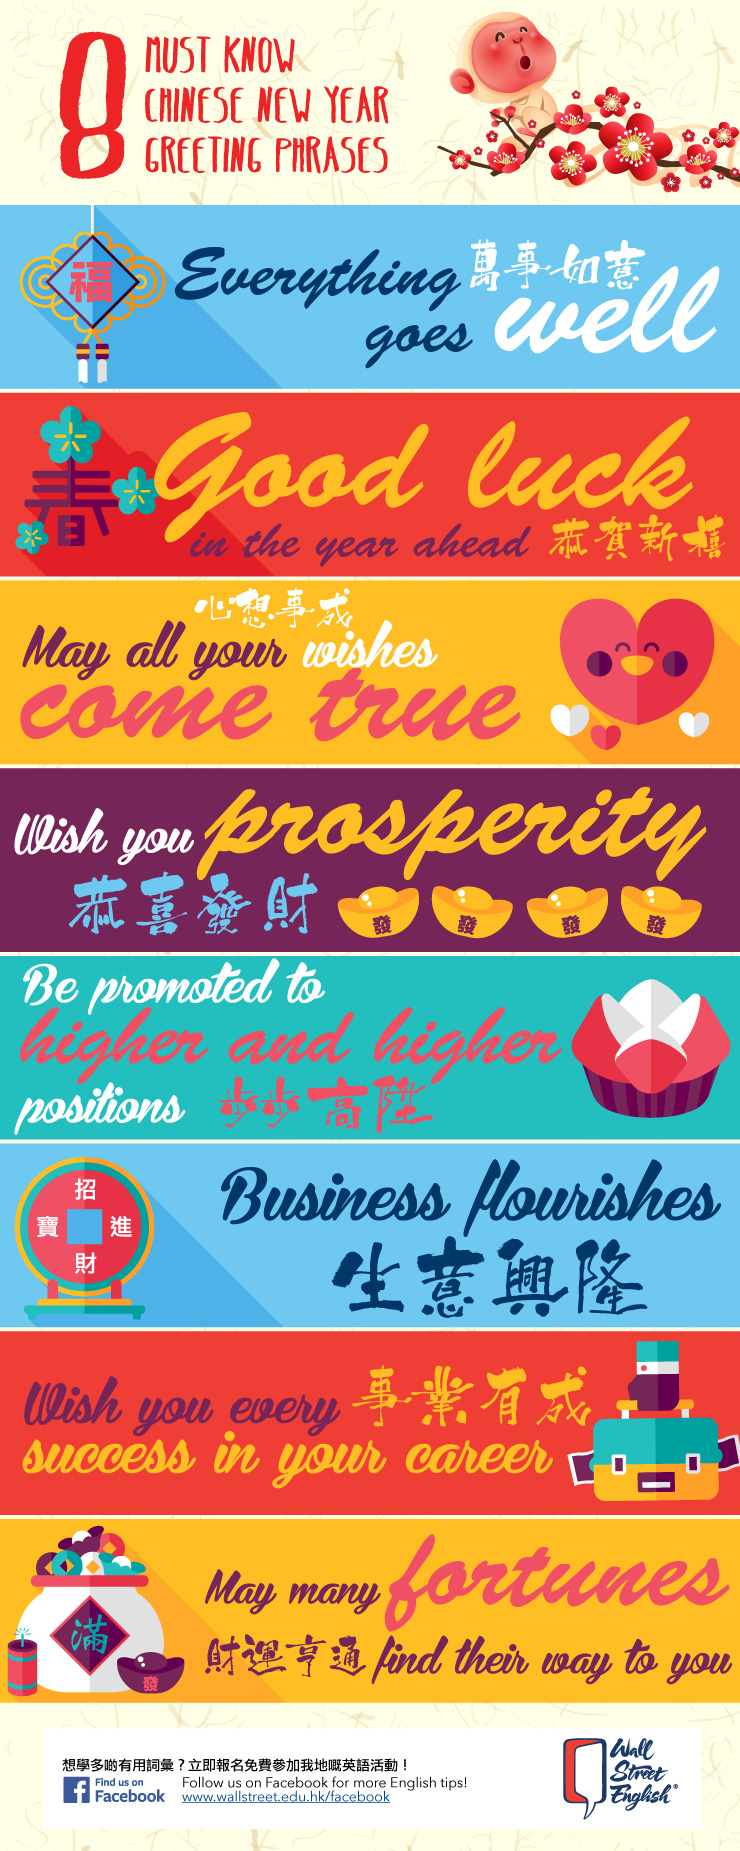 8 Must Know Chinese New Year Greeting Phrases Wall Street English